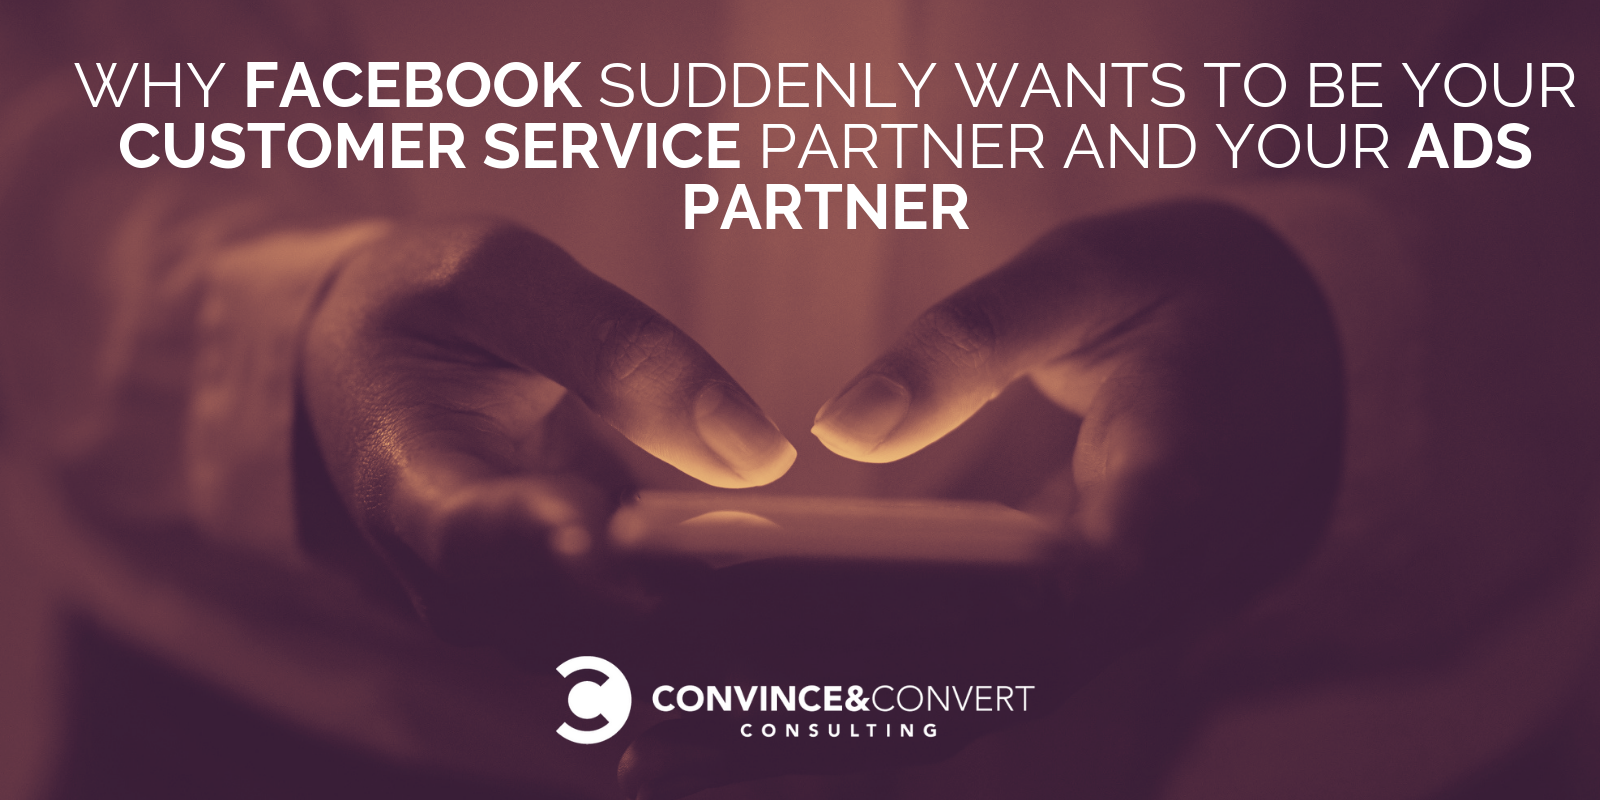 Why Facebook Suddenly Wants To Be Your Customer Service Partner AND Your Ads Partner